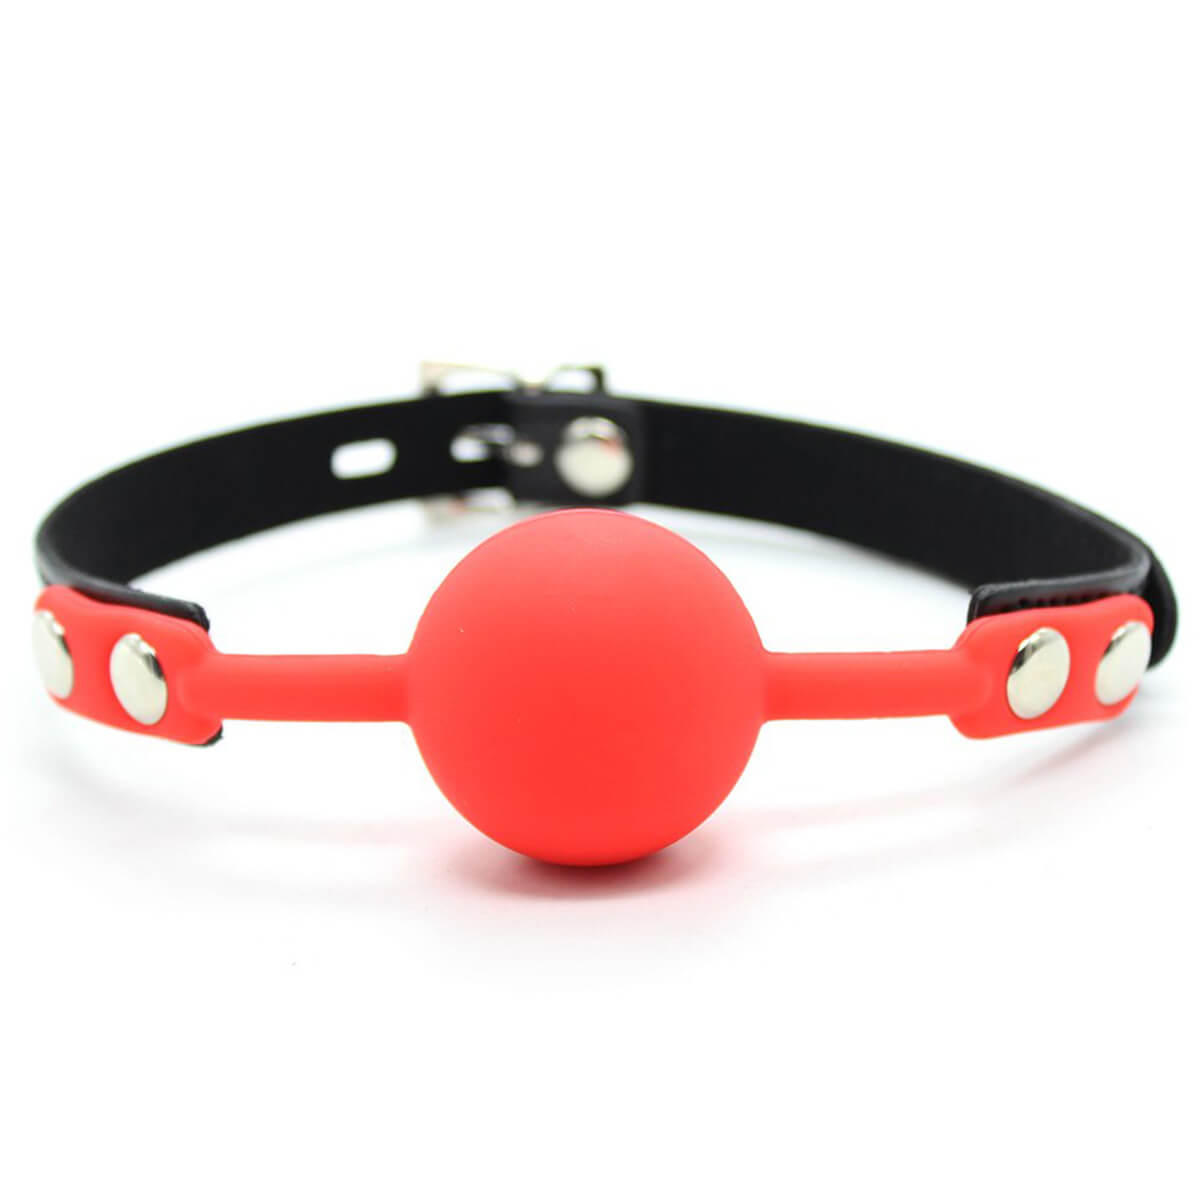 Hitinight SM Silicone Ball Gag With Lock Leather Strap